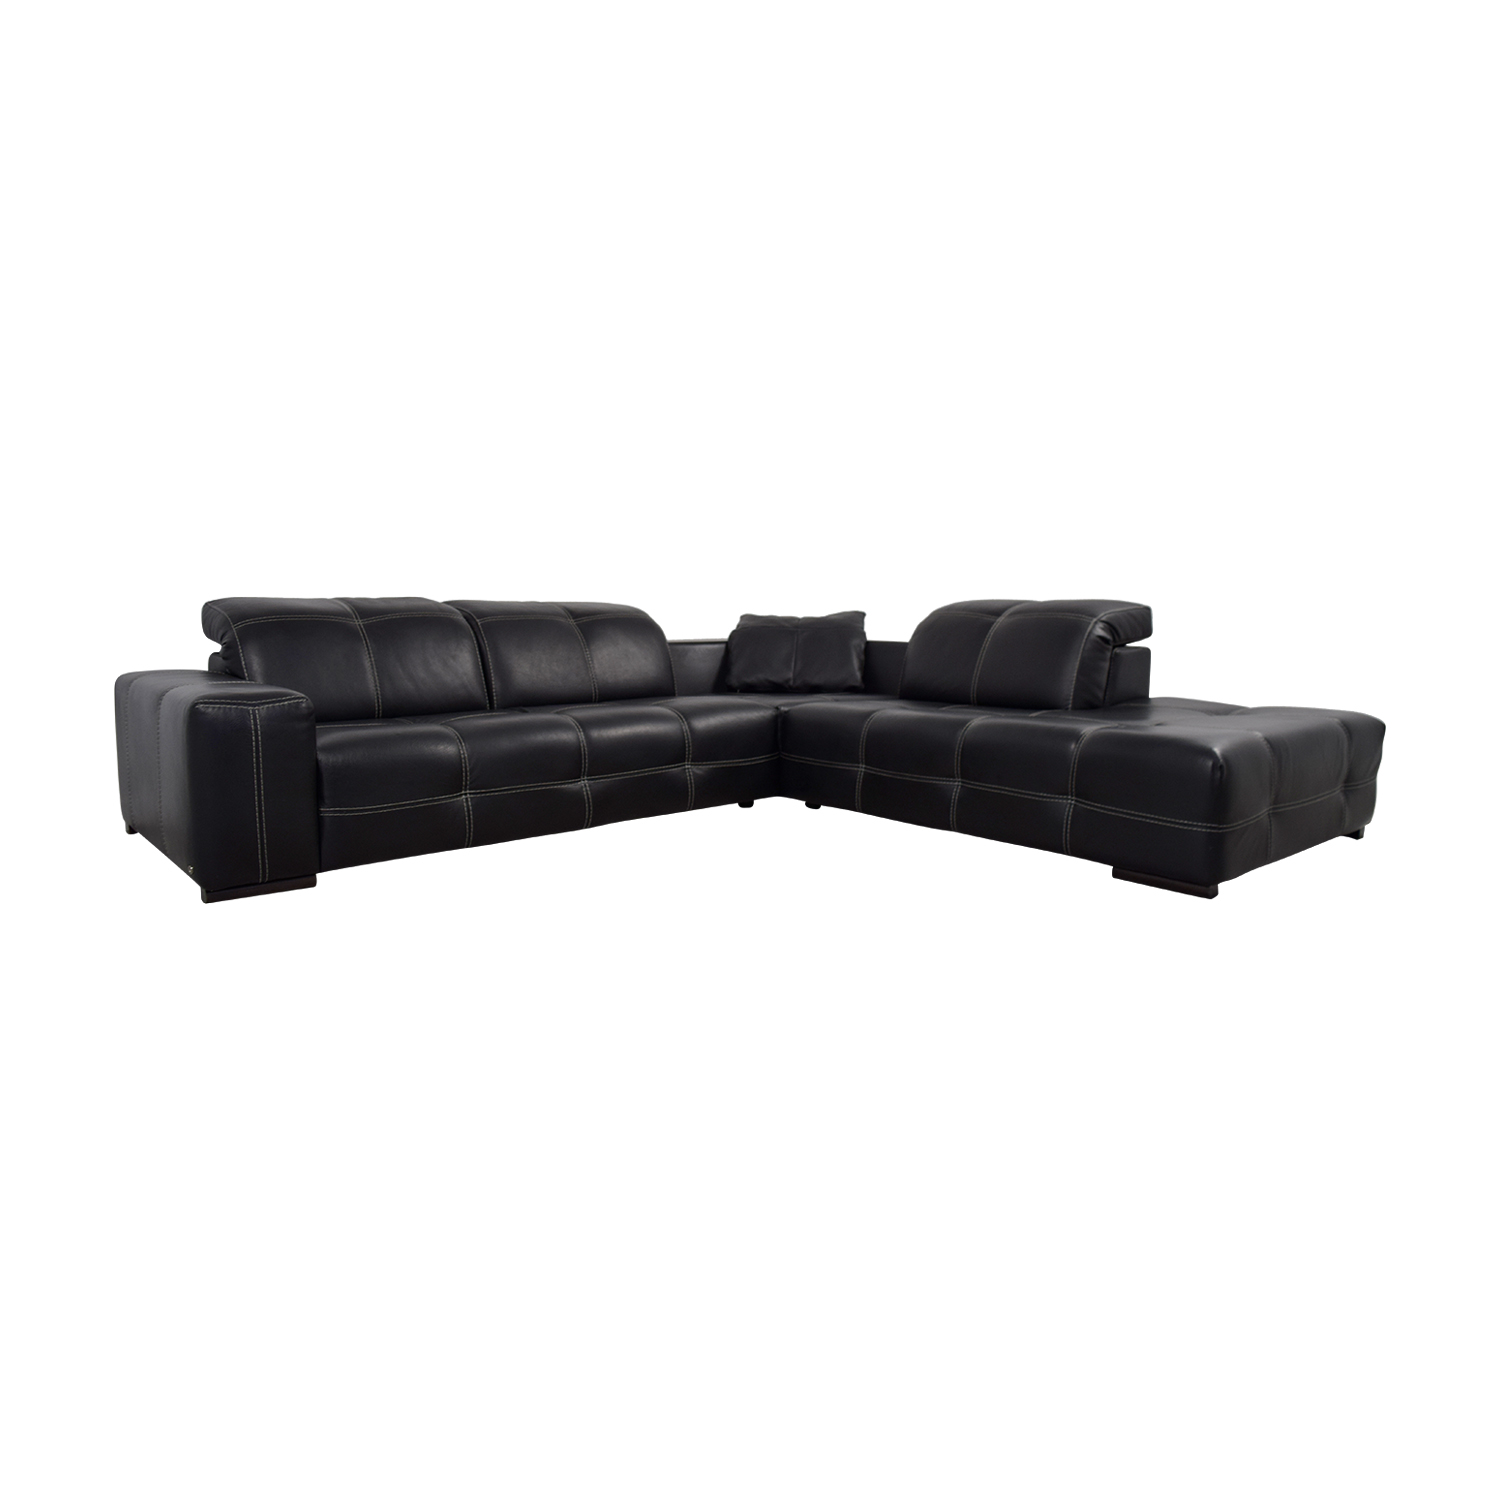 dorian quick sectional p piece living white view sofa natuzzi italia sectionals